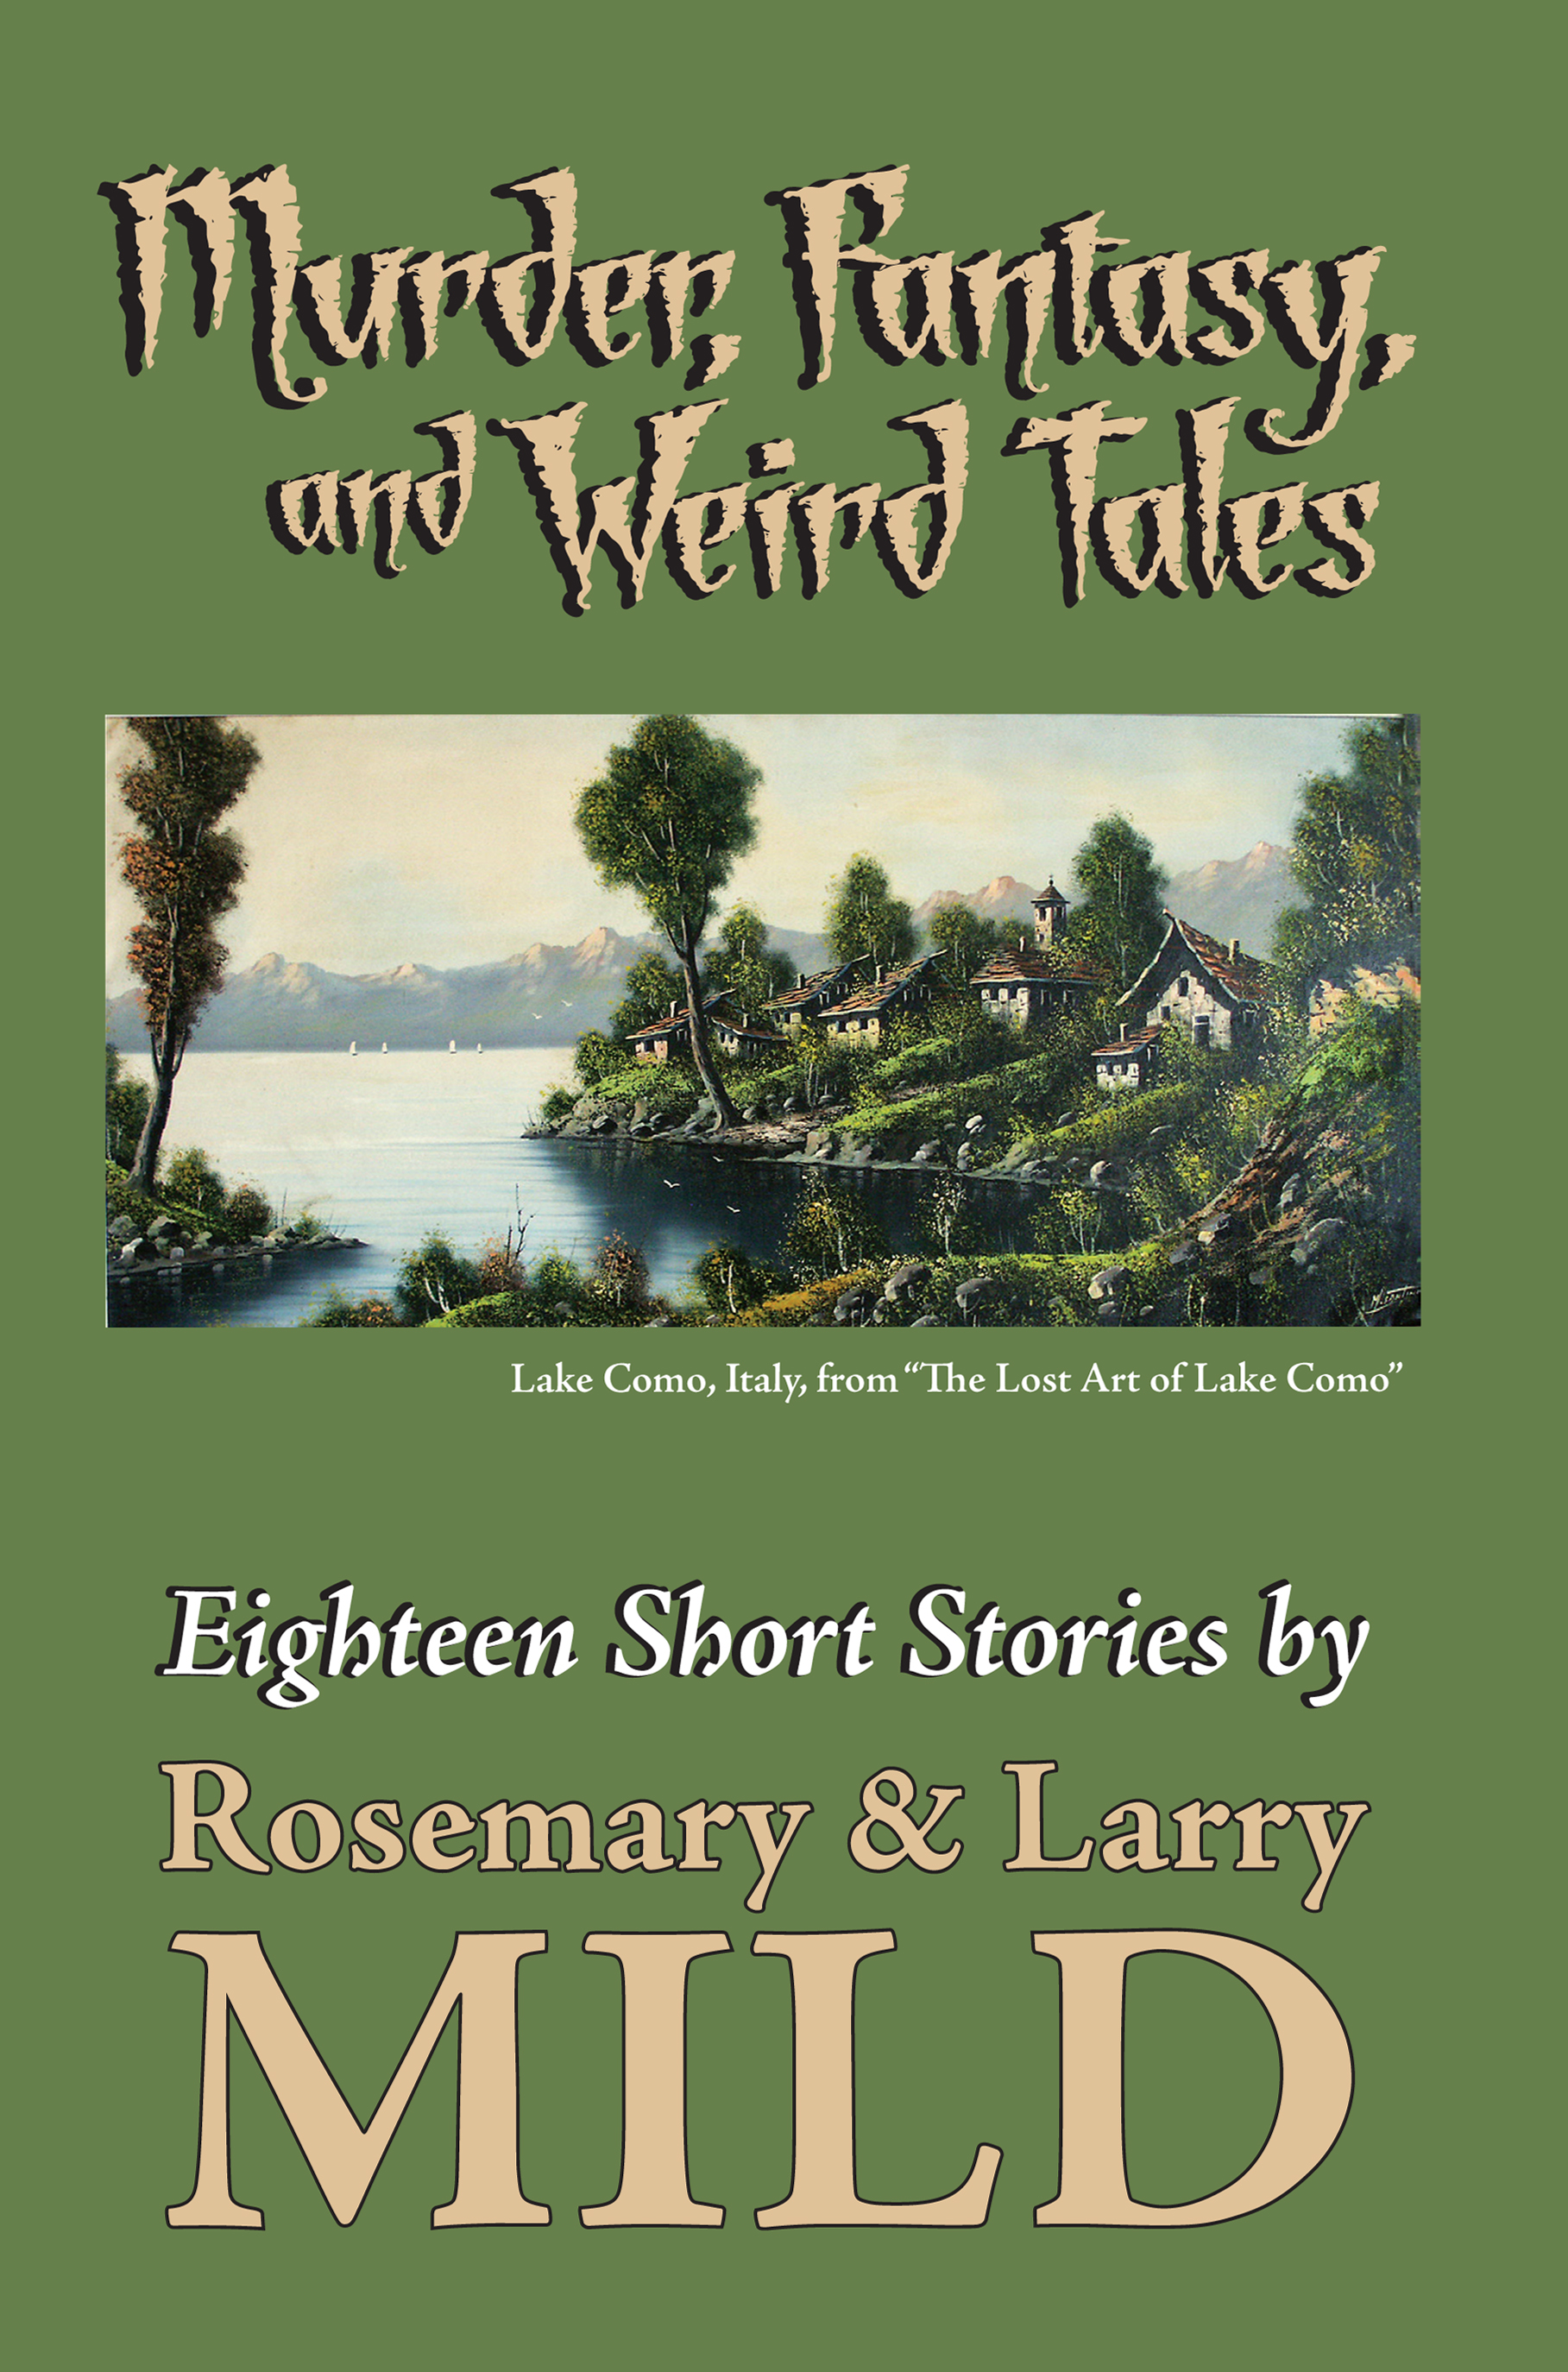 Murder, Fantasy, and Weird Tales by Larry and Rosemary Mild